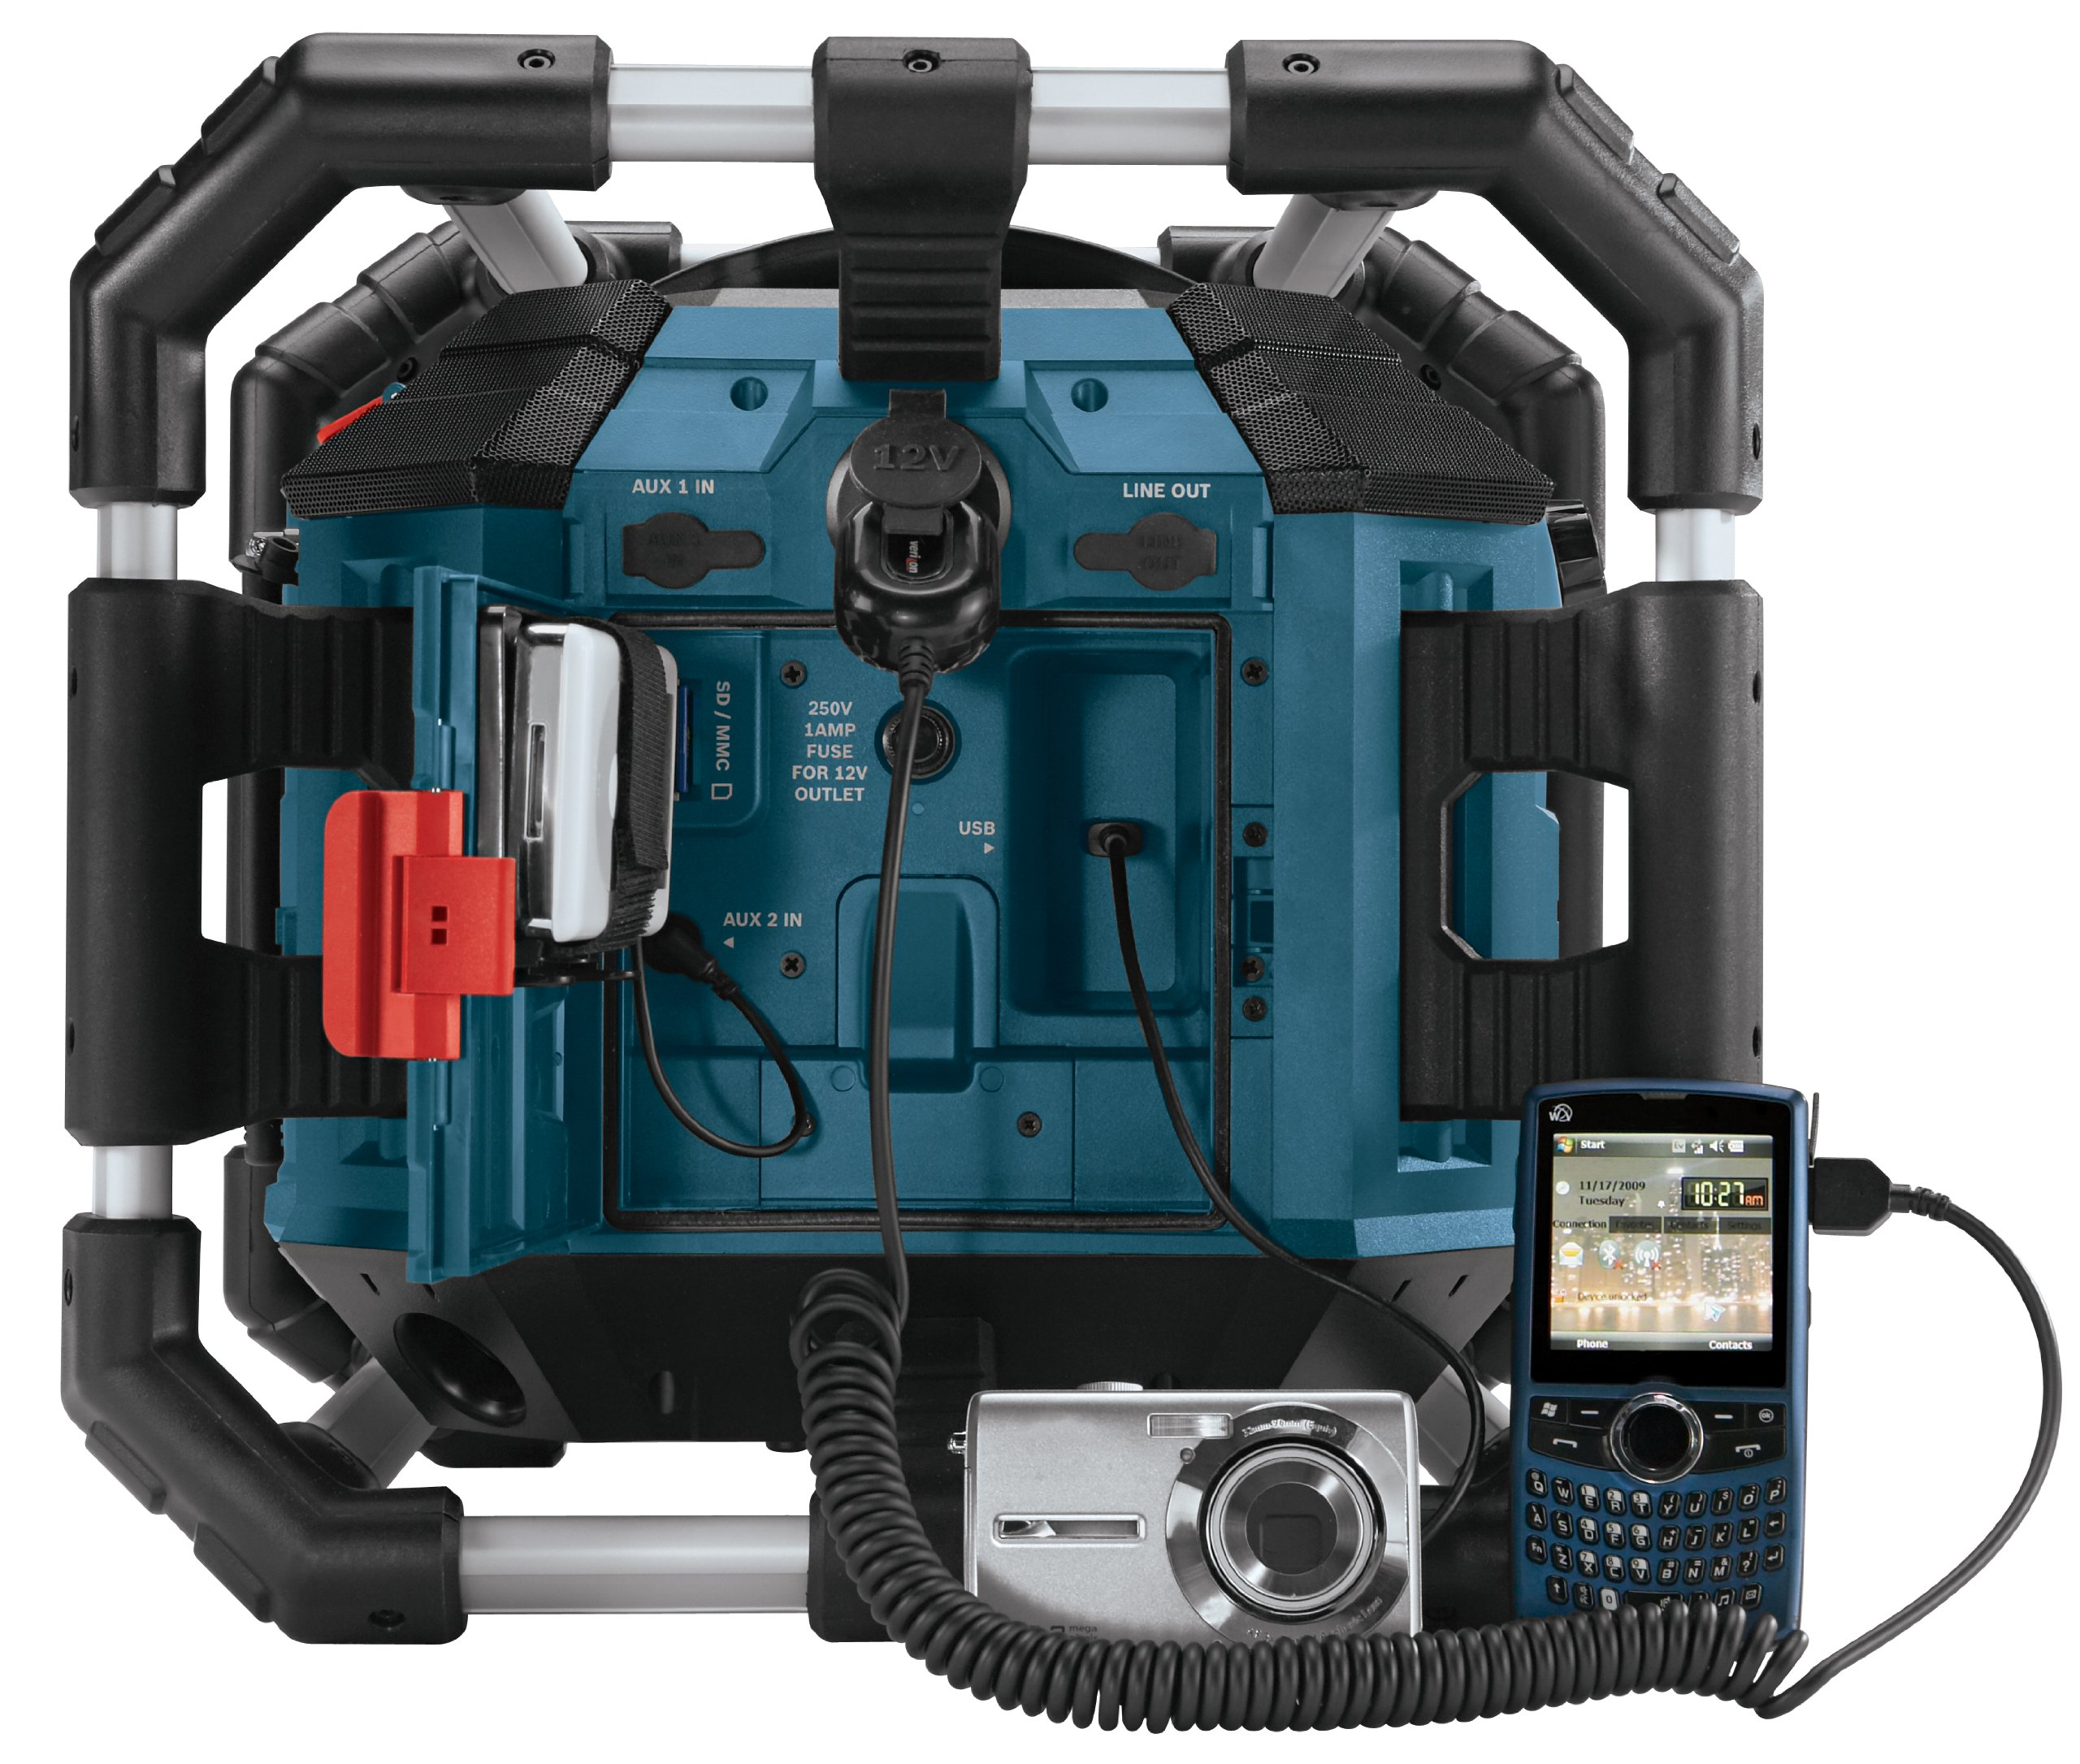 galleon bosch pb360s 18 volt lithium ion power box jobsite radio and charger. Black Bedroom Furniture Sets. Home Design Ideas